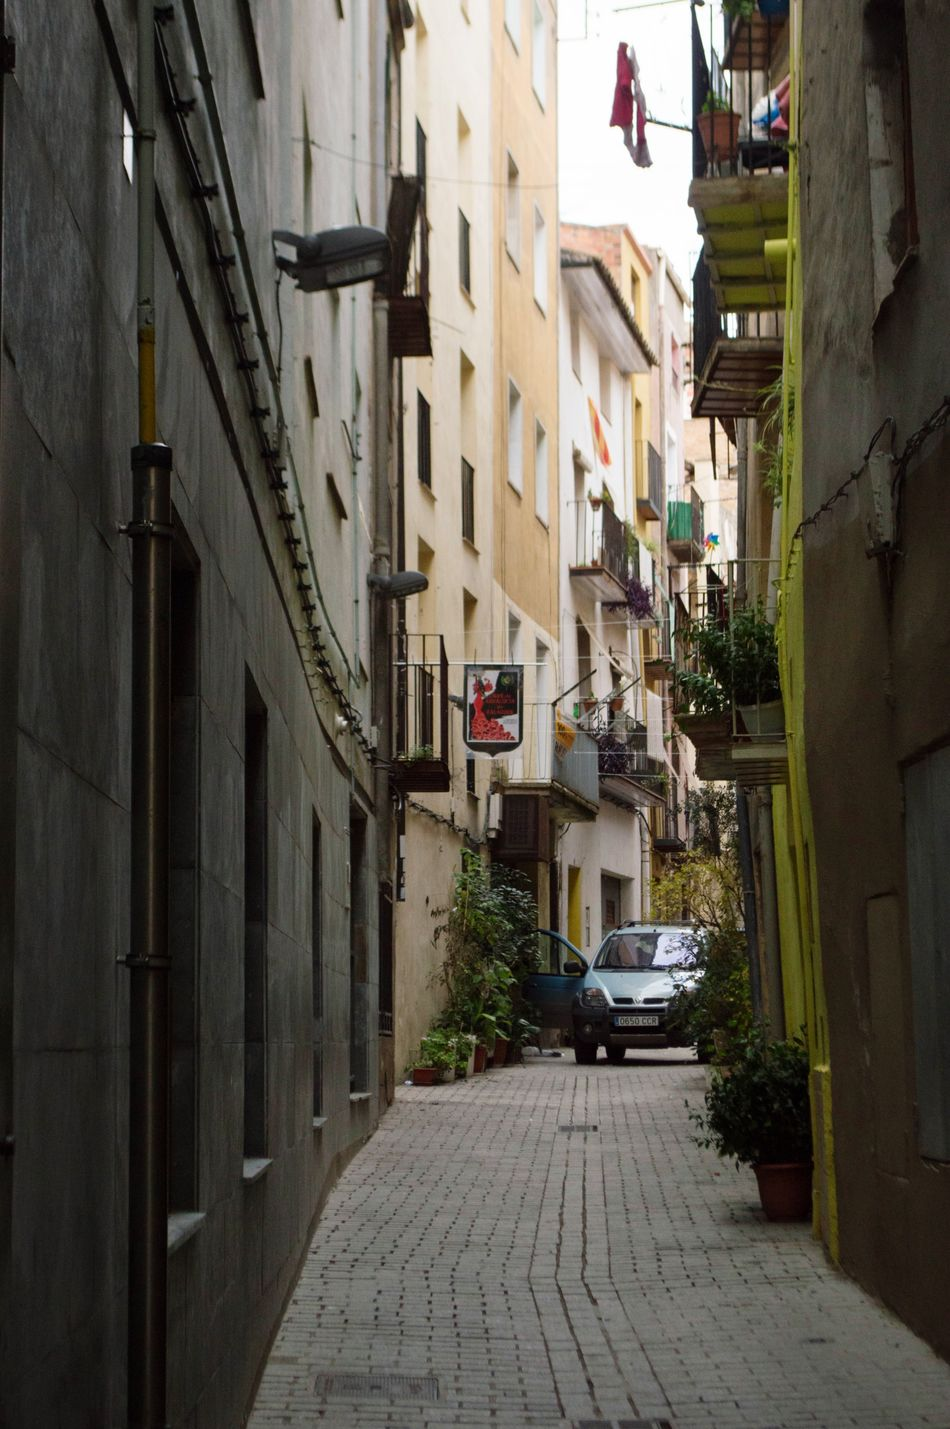 Streets of a town Architecture Balaguer Day Car Street Town Old Townlife